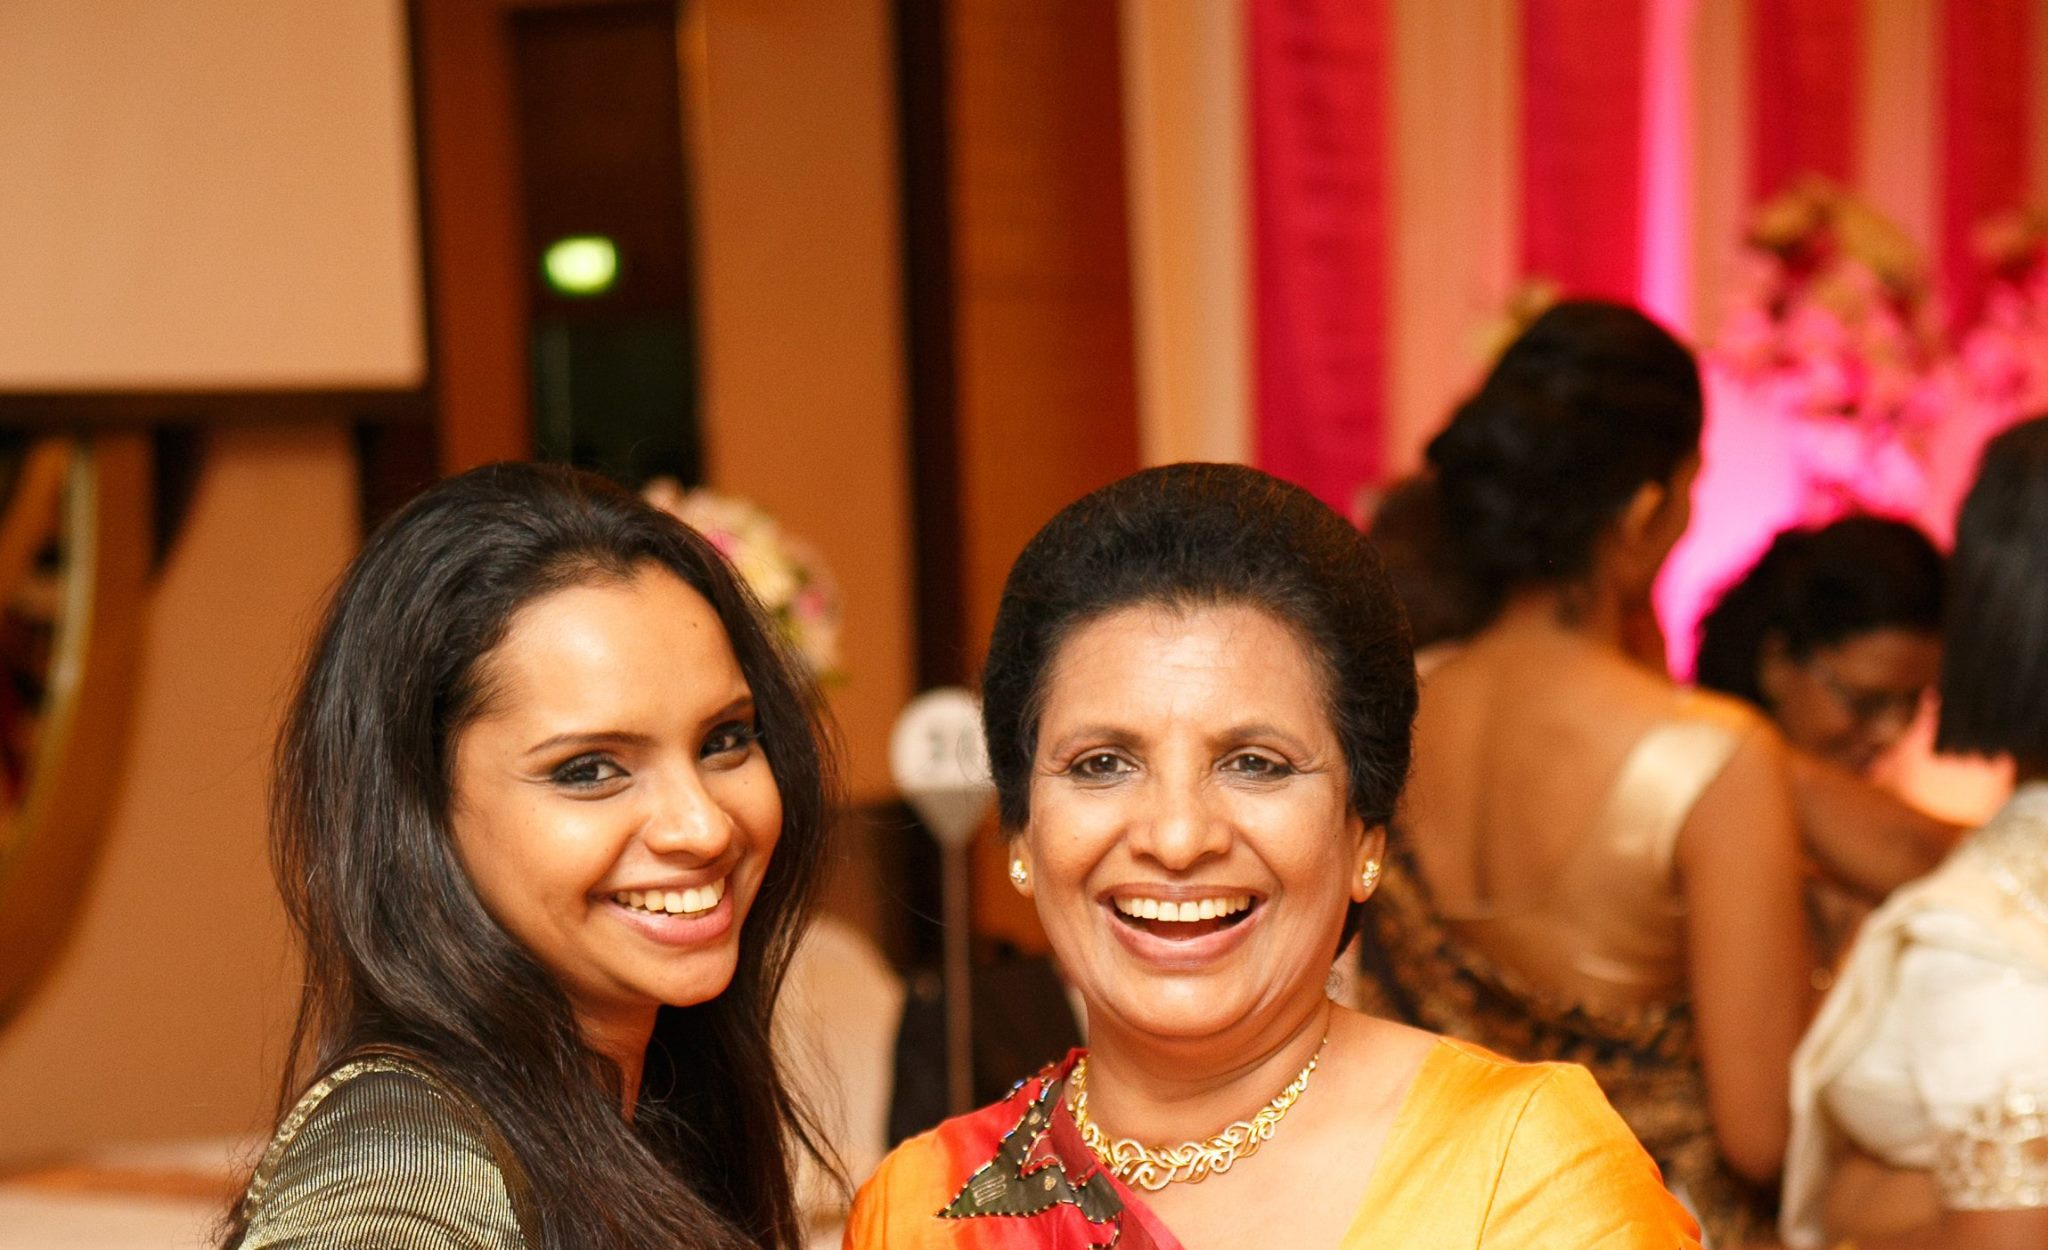 Nisanga Mayadunne, pictured left, and Shantha Mayadunne, pictured right, in a photo posted to Nisanga's Facebook page.